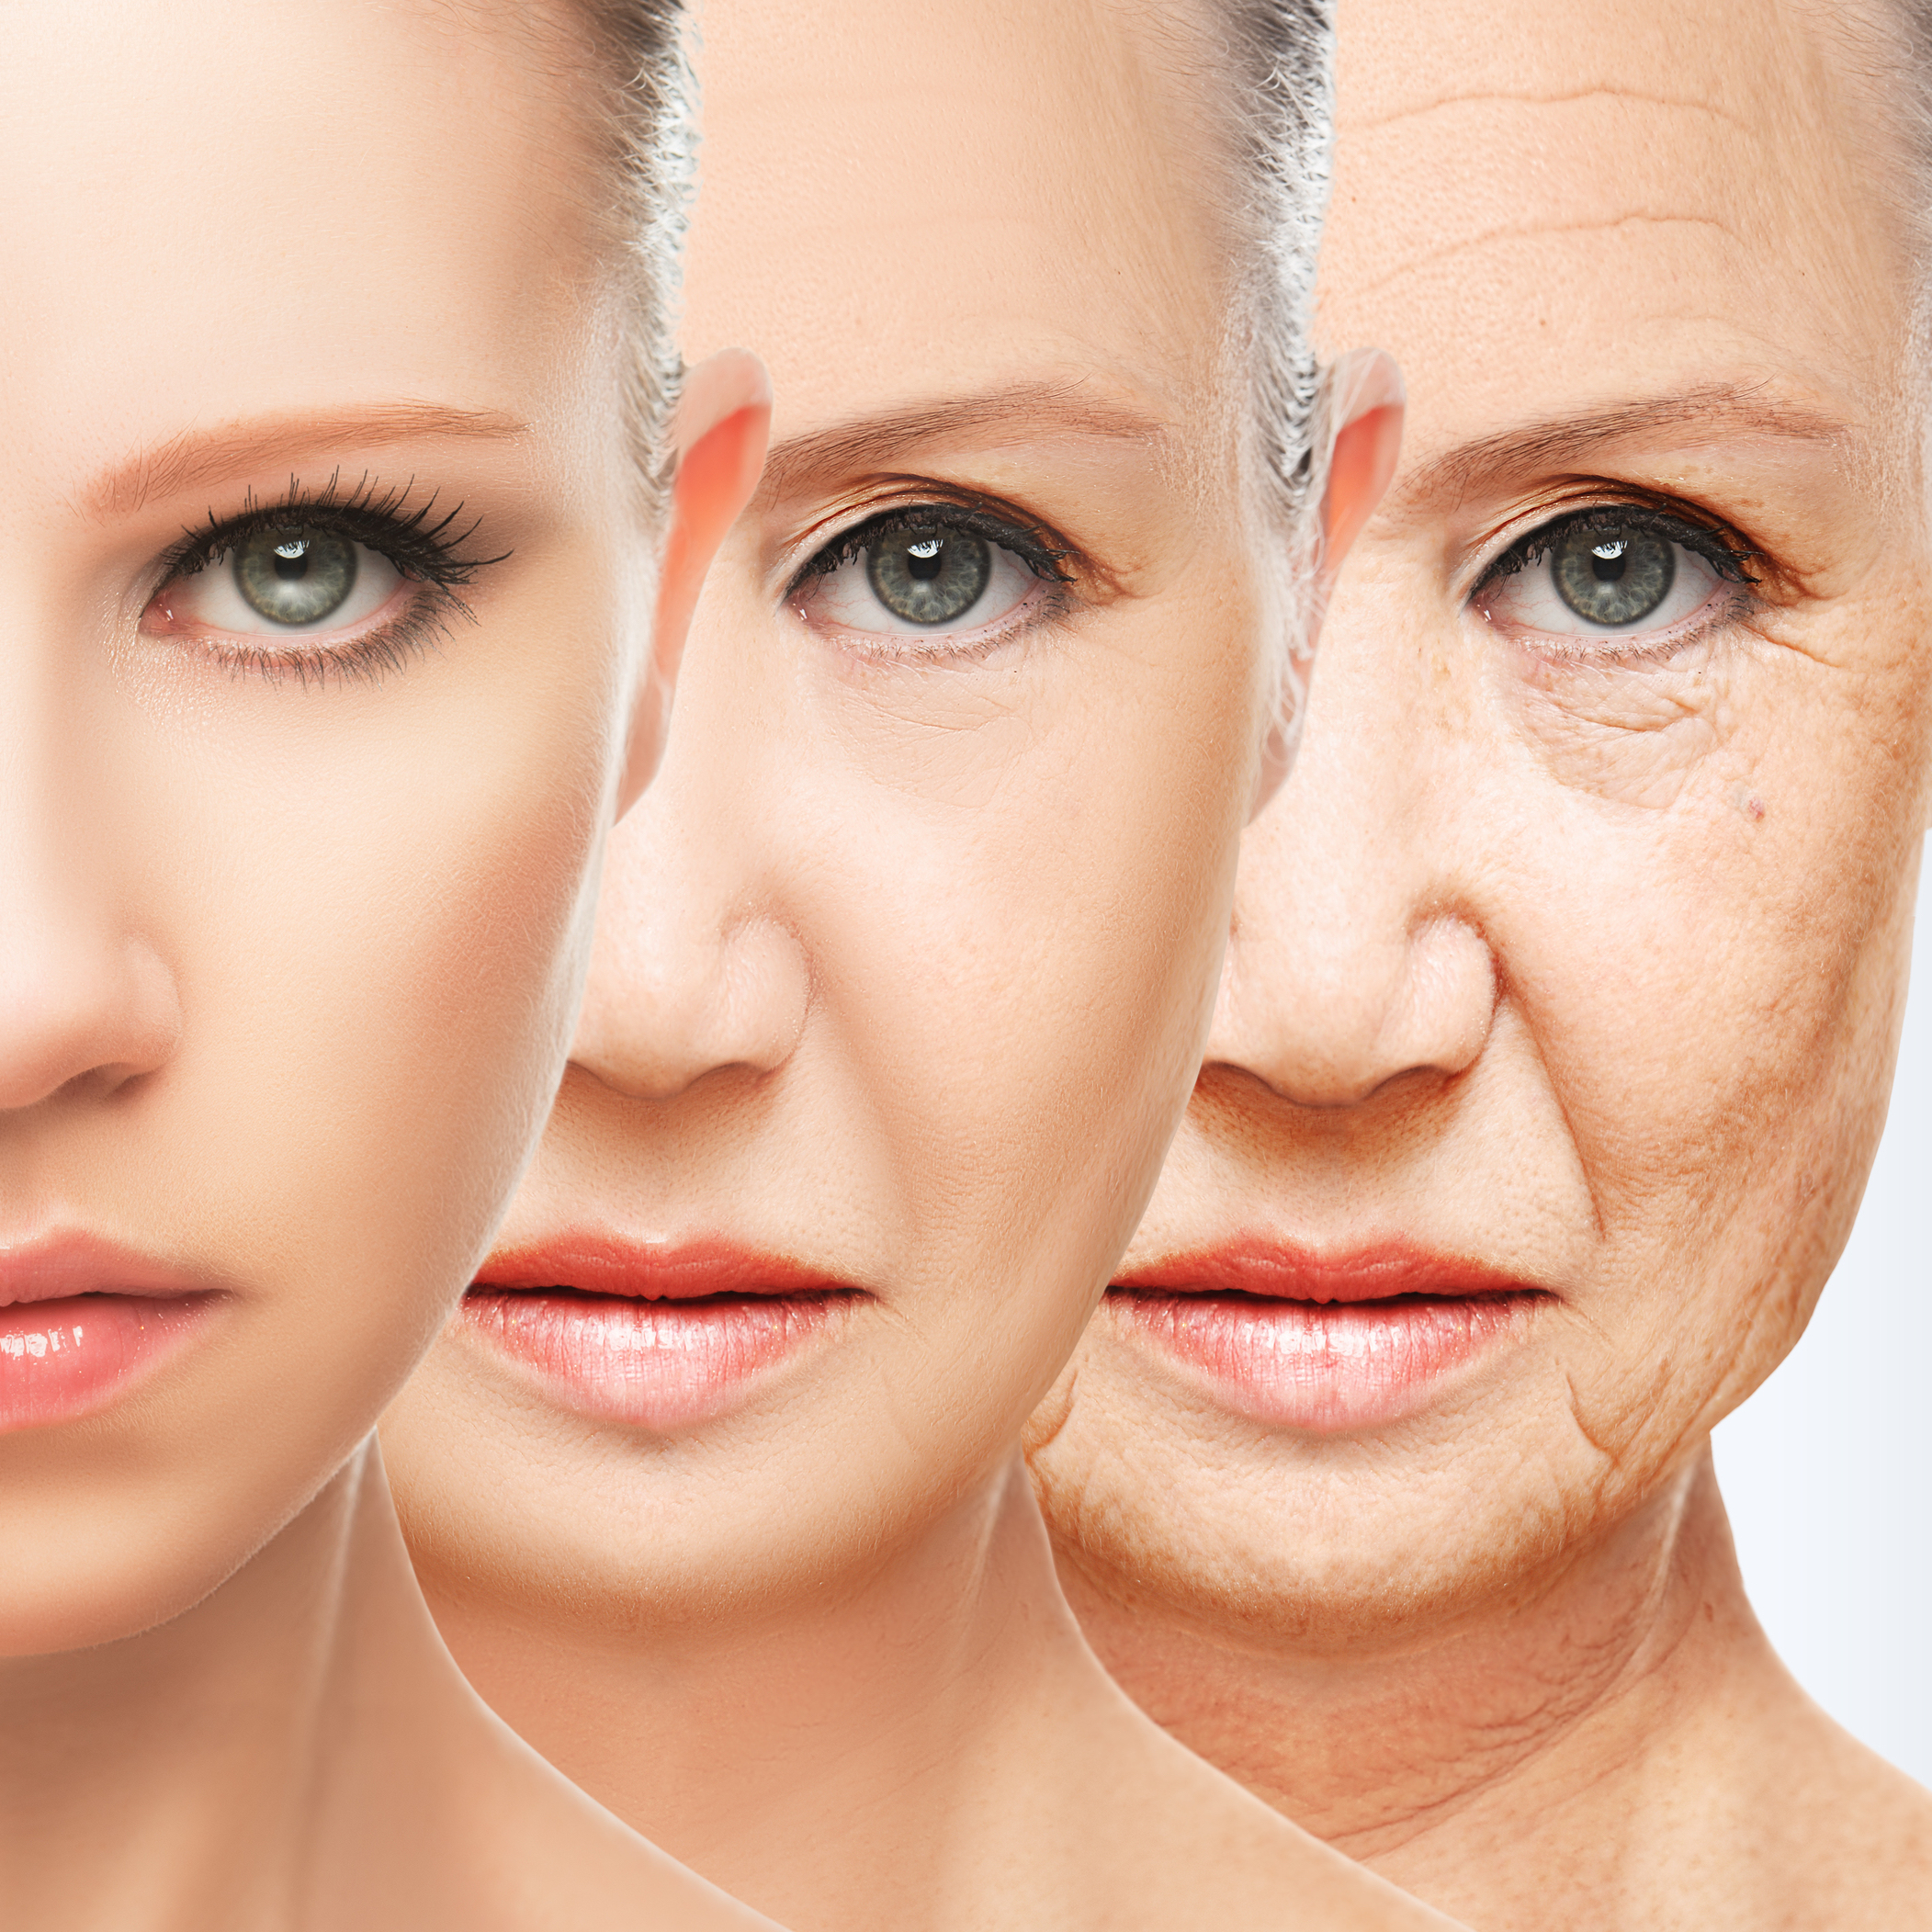 Beauty Concept Skin Aging. Anti-aging Procedures, Rejuvenation,